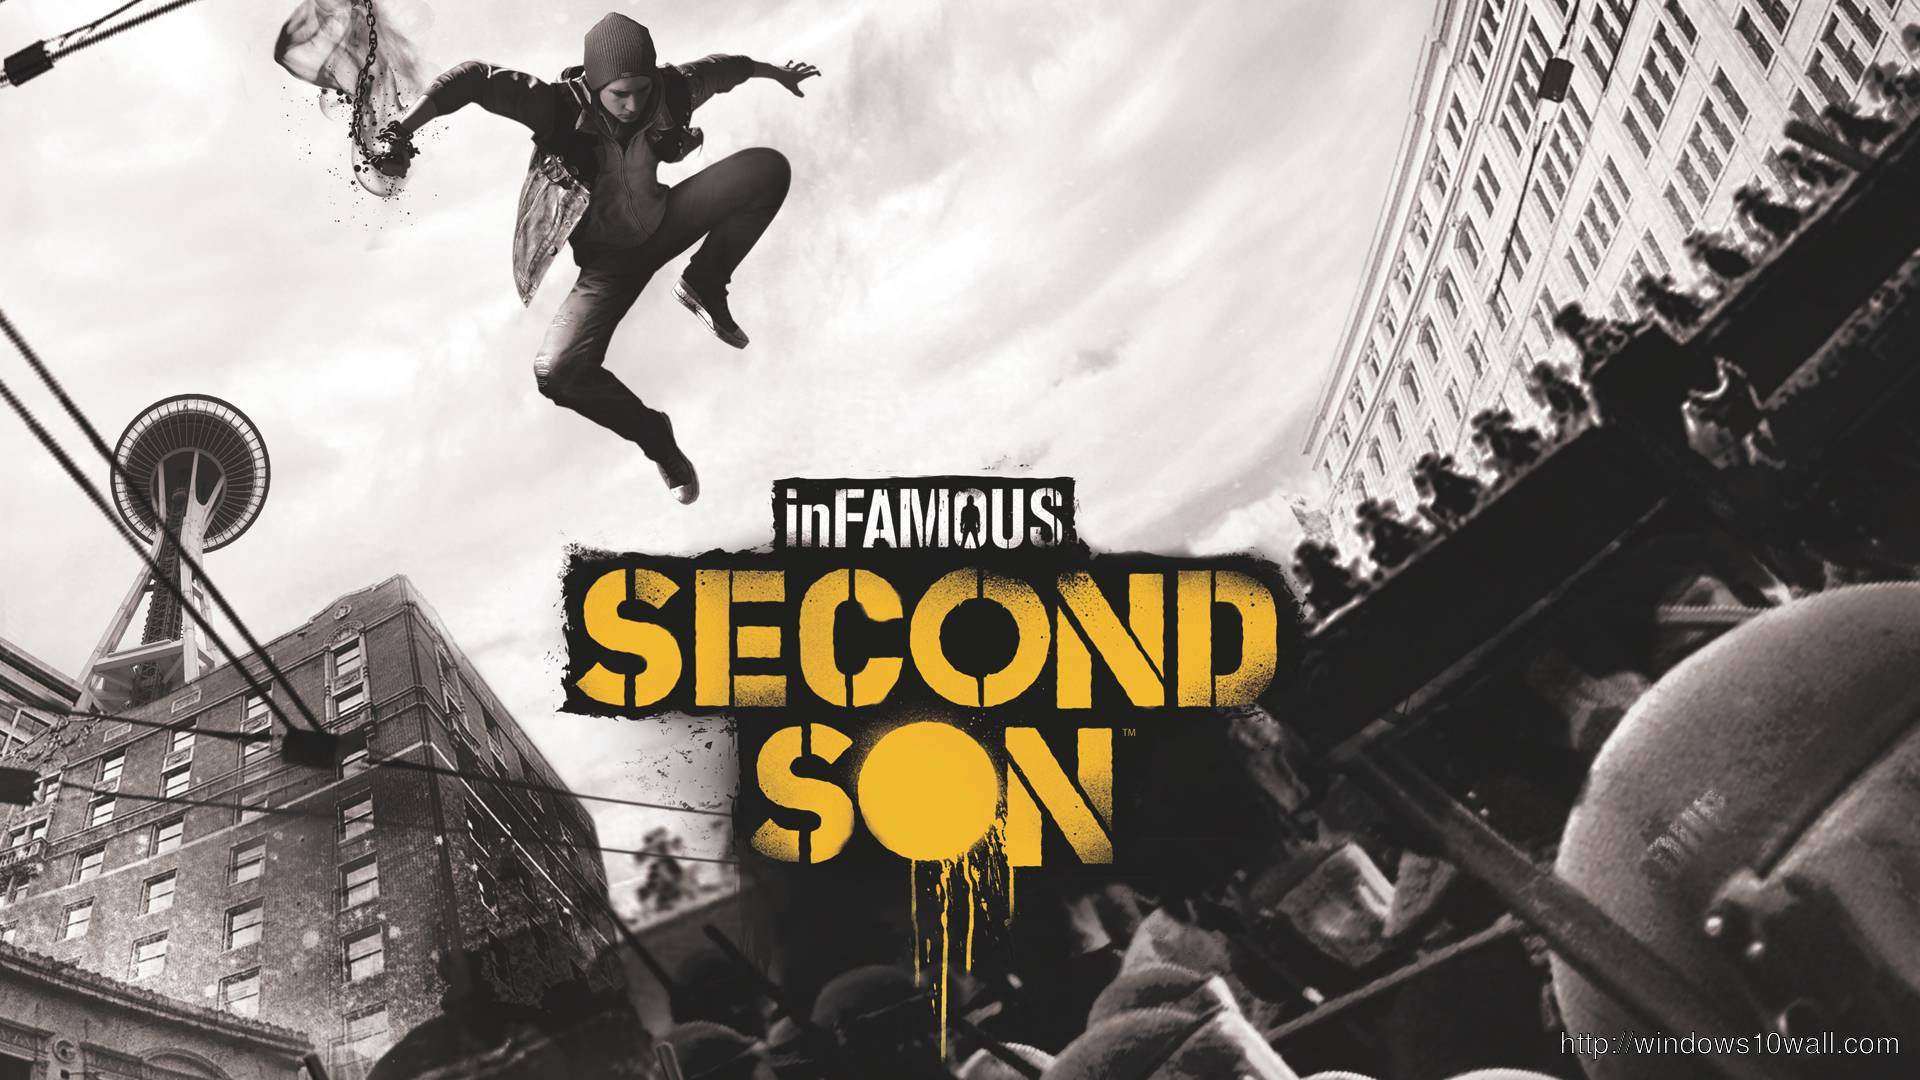 Infamous: Second Son – First In-Game PlayStation 4 wallpaper